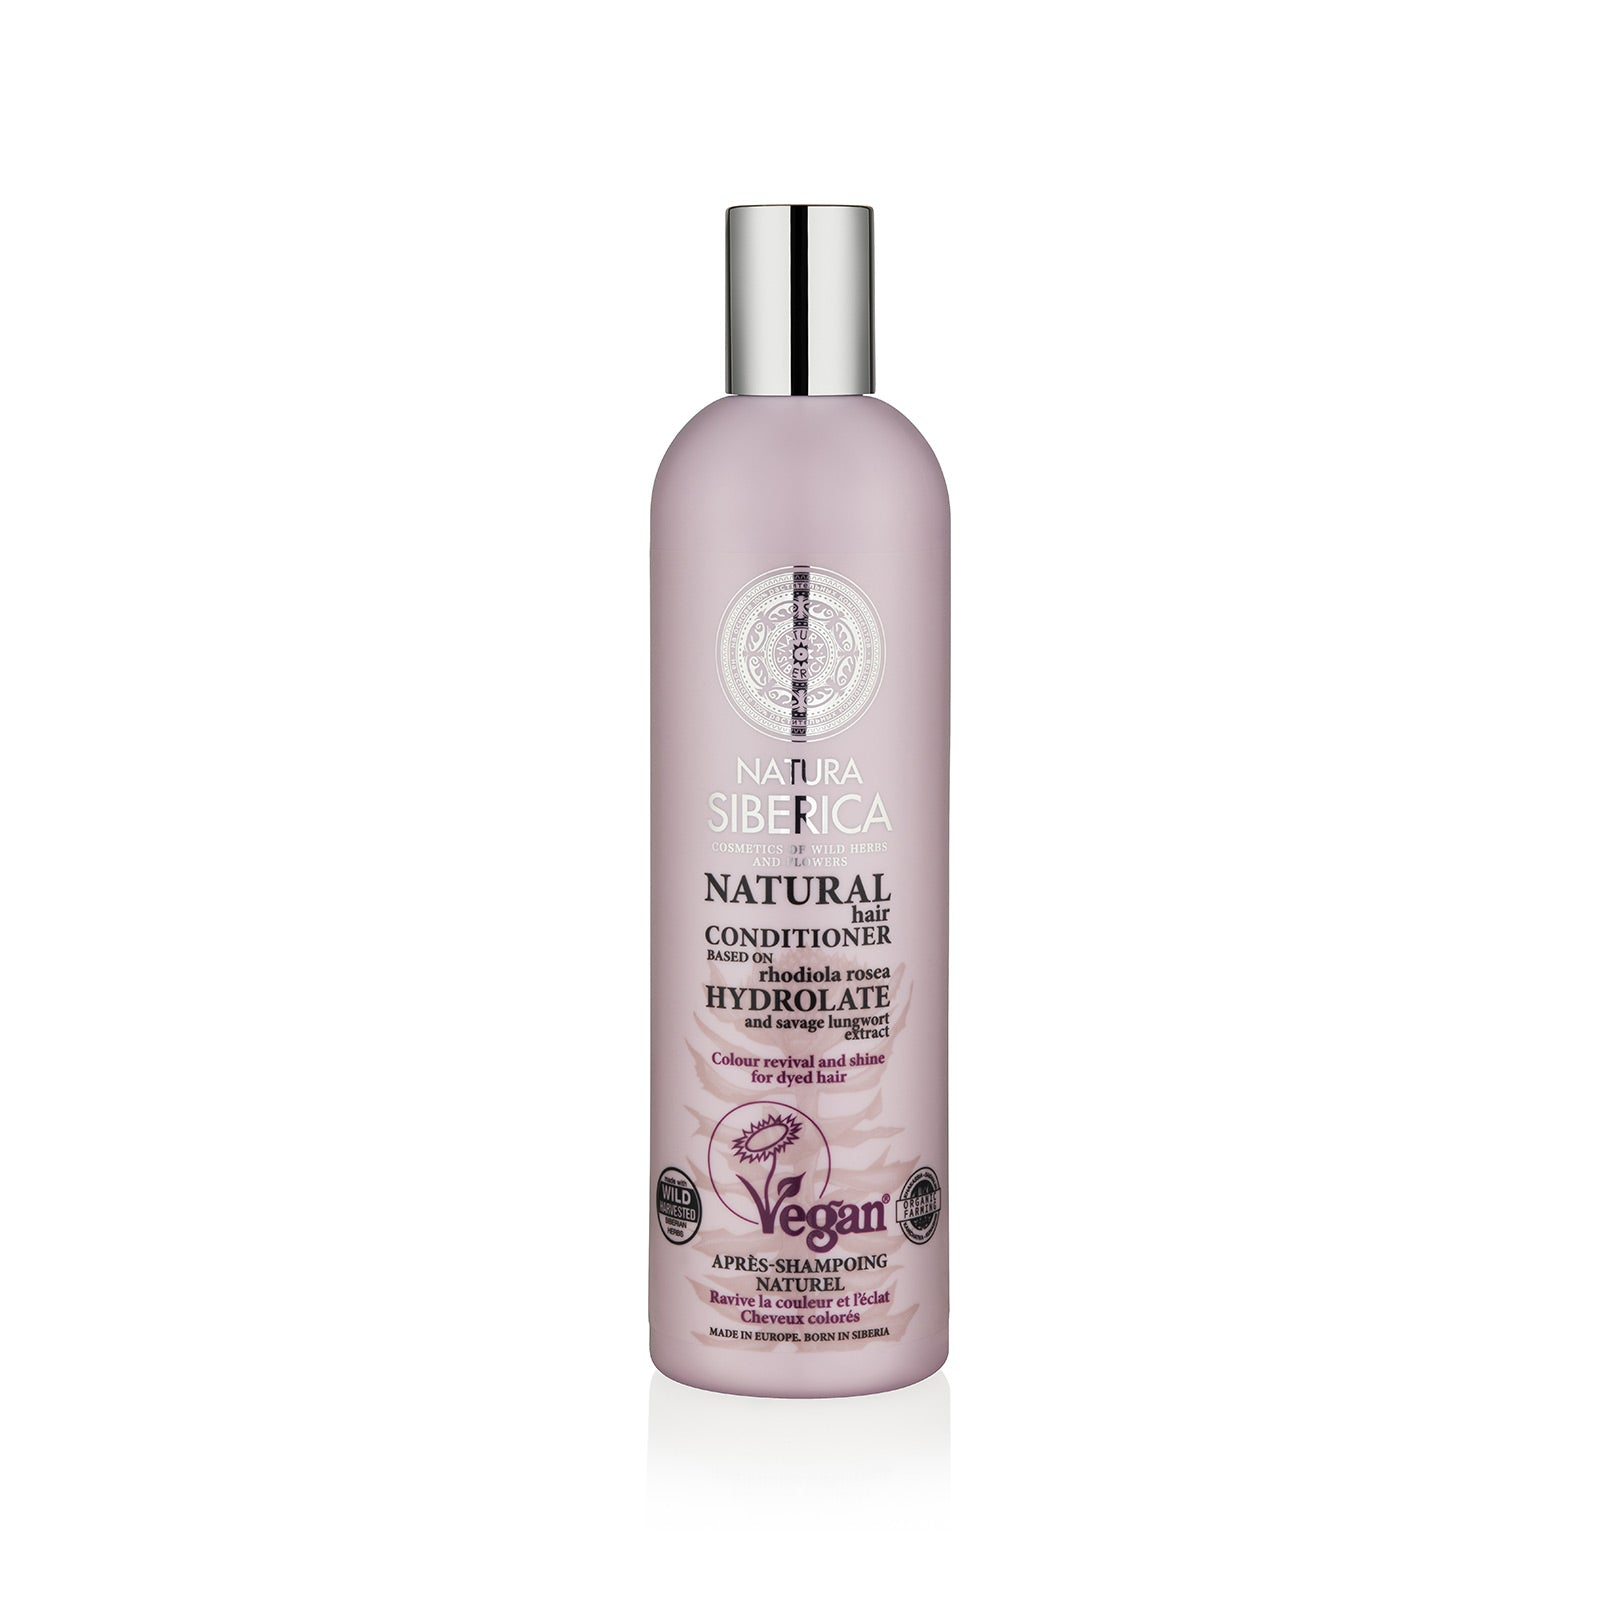 Colour Revival and Shine Conditioner for dyed hair, 400 ml